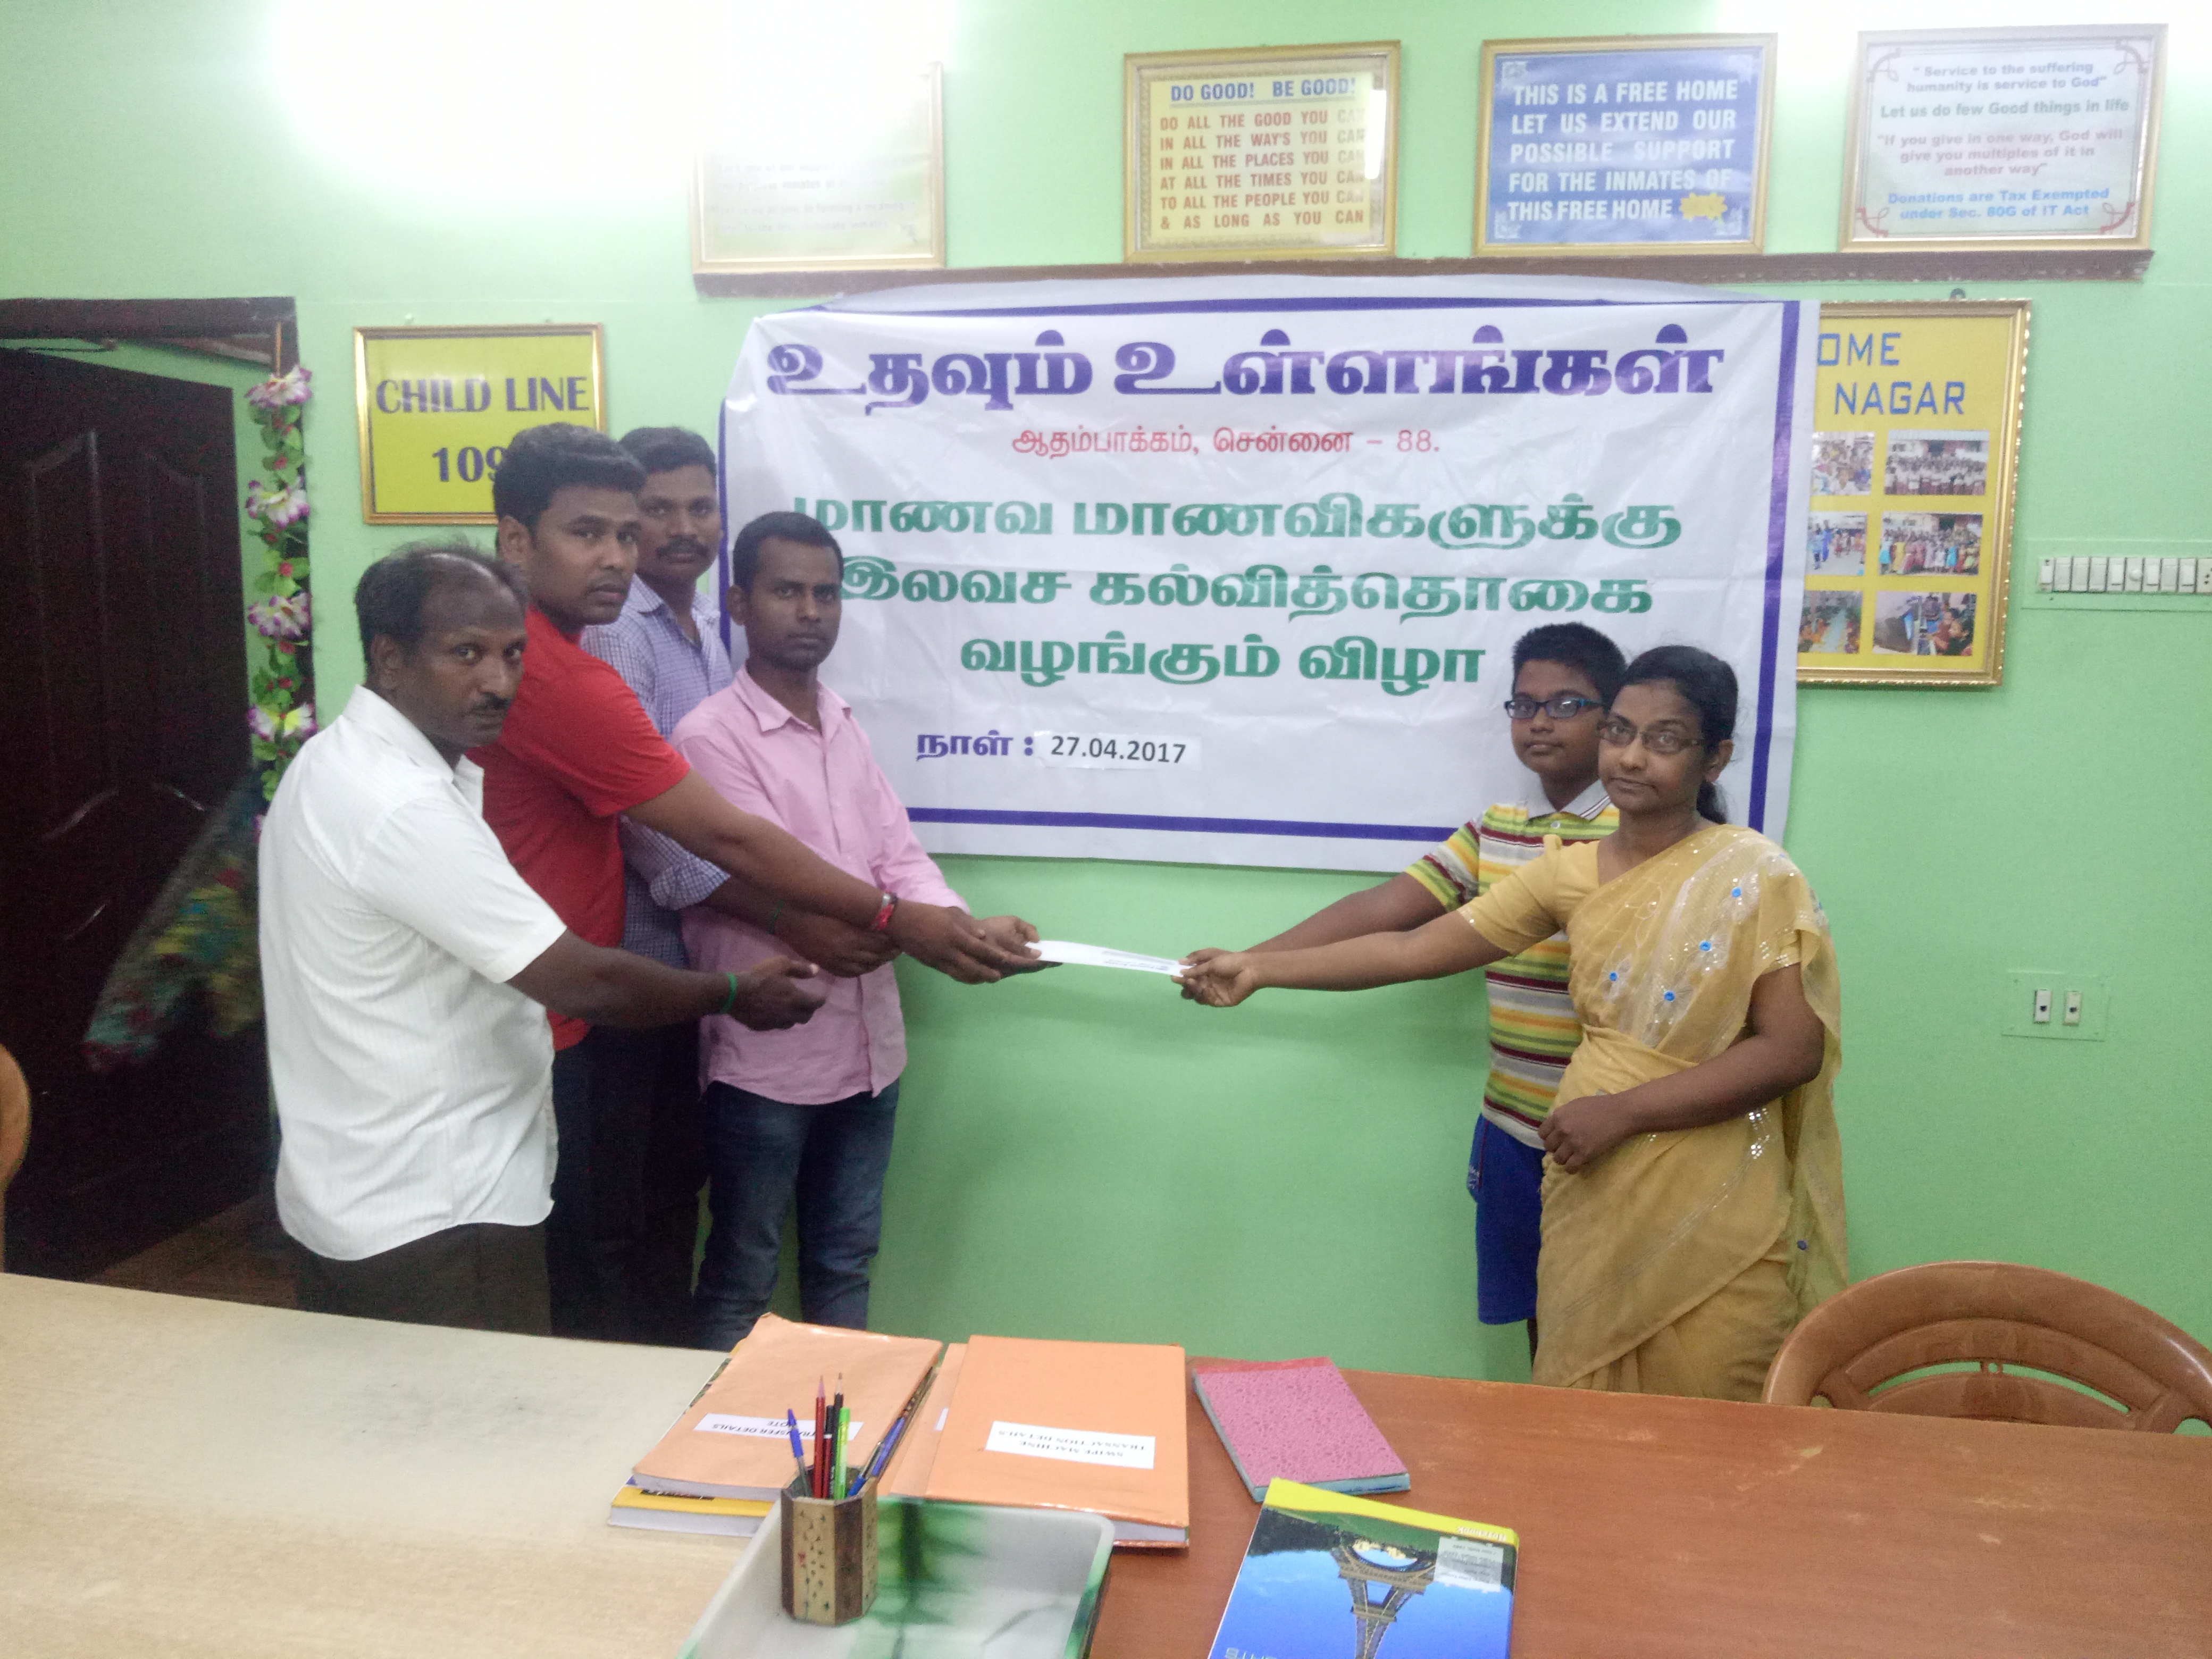 Medical expenses were sponsored to t destitute women at Adambakkam.